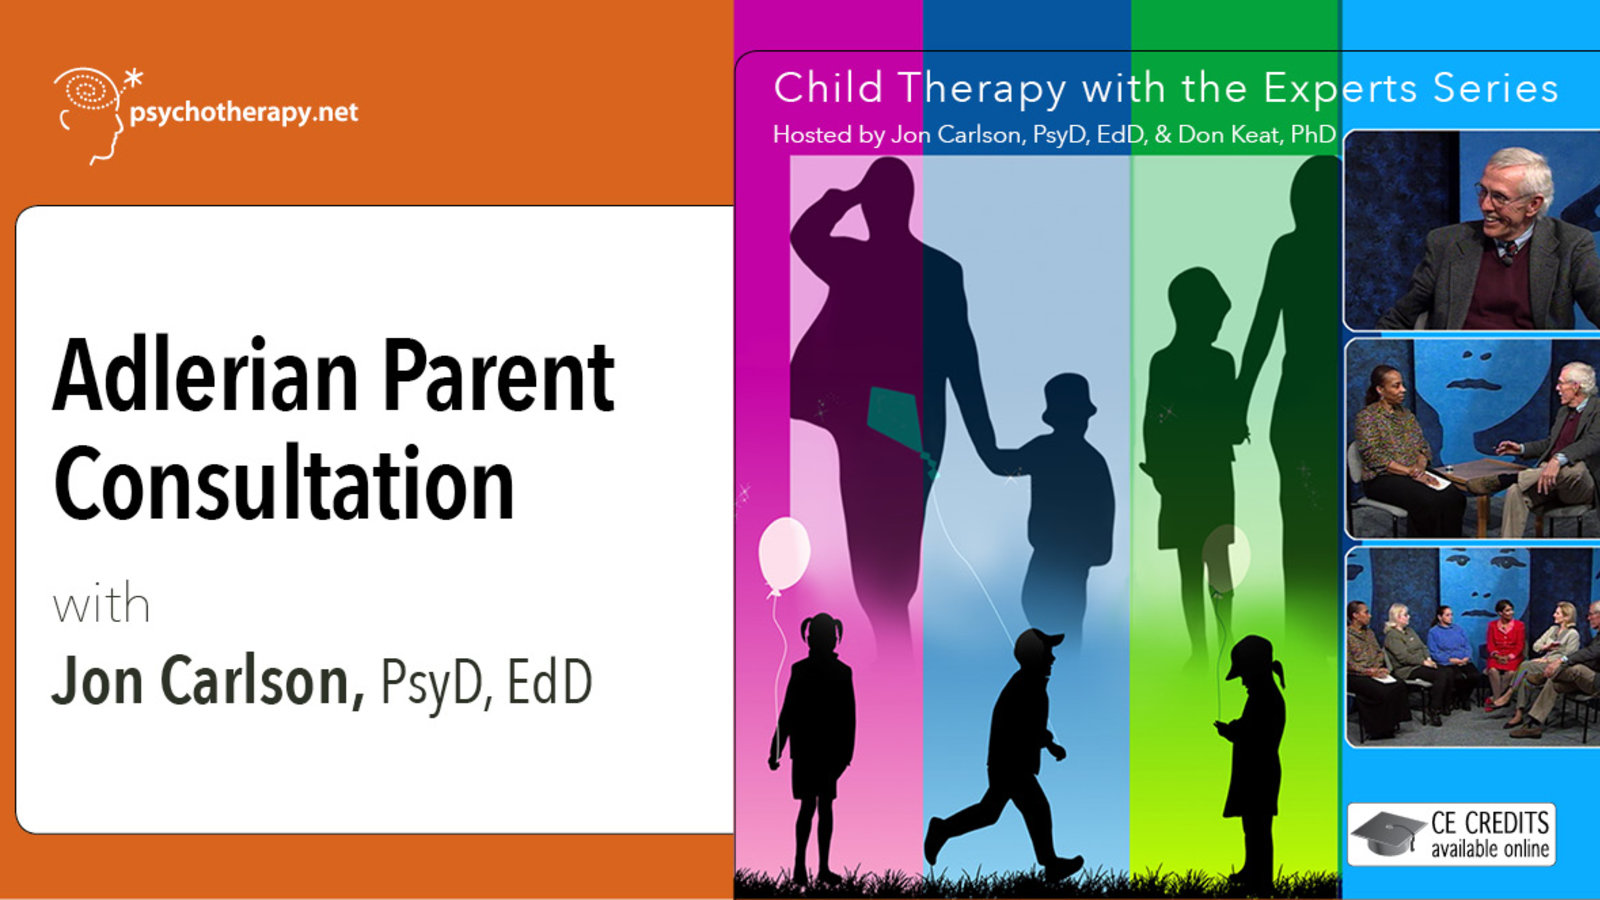 Child Therapy with the Experts Series